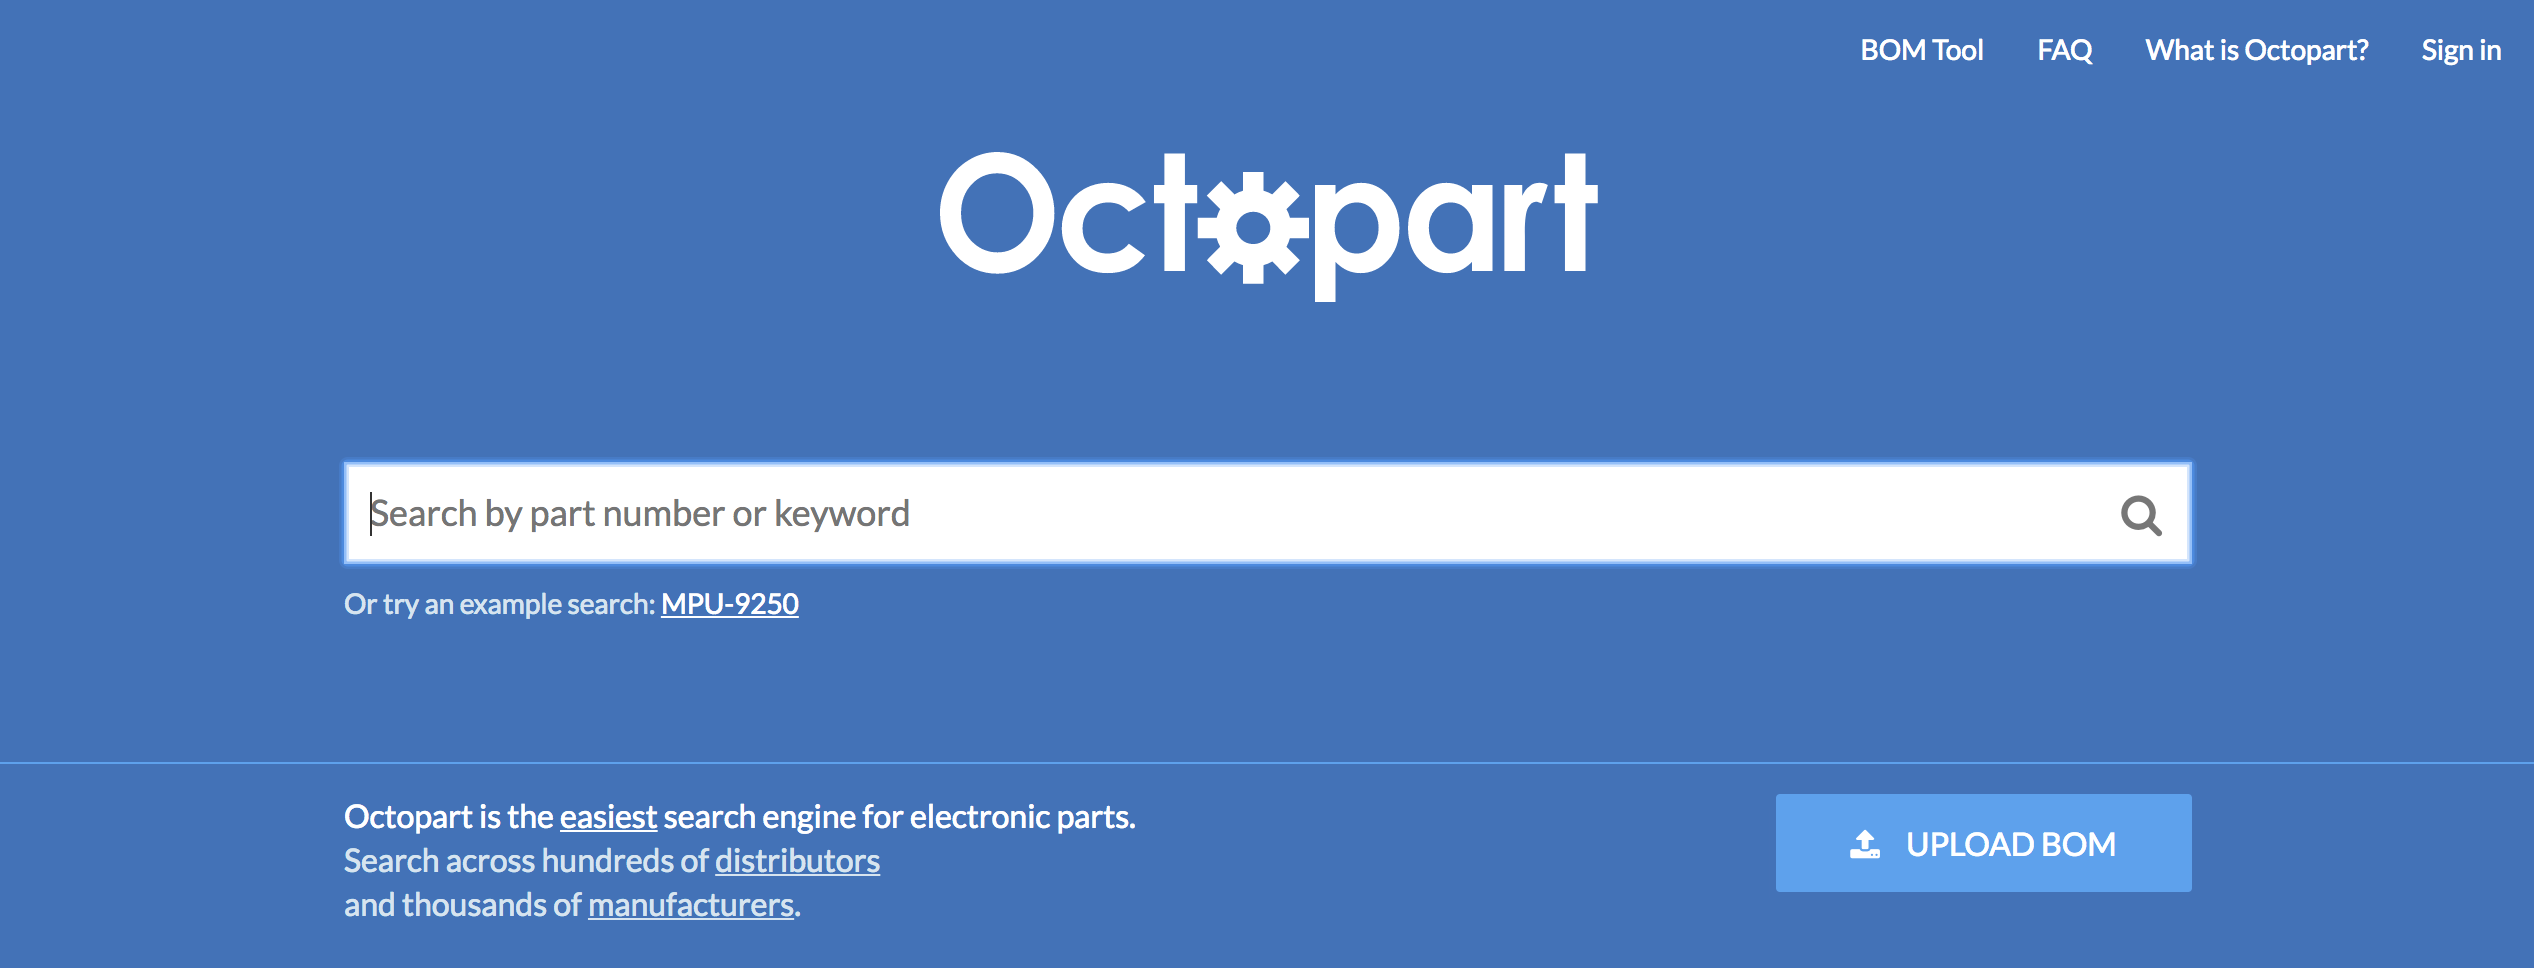 FAQ - Downloading and installing CAD models - Octopart